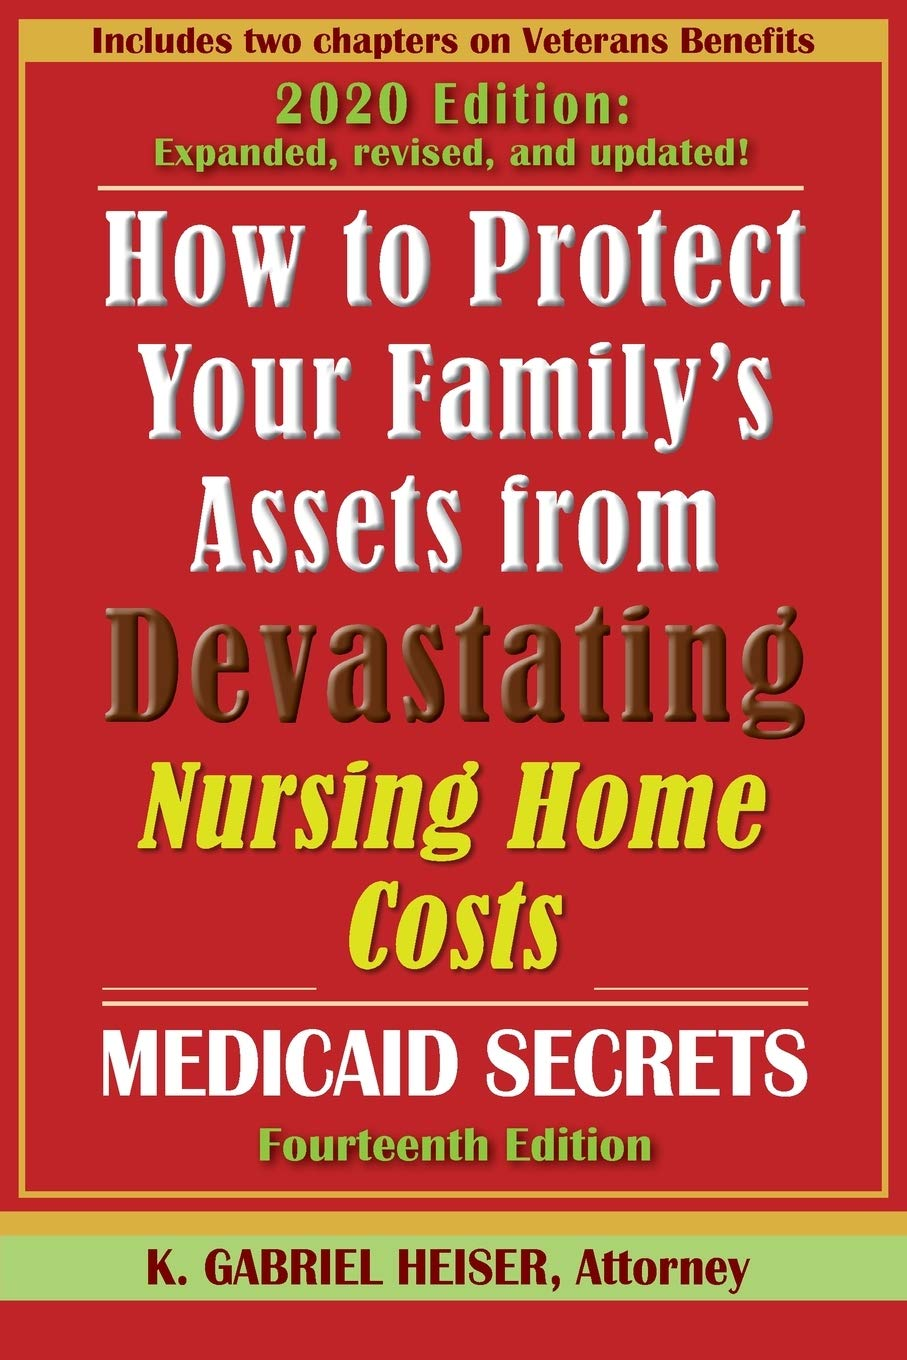 Download How To Protect Your Family's Assets From Devastating Nursing Home Costs: Medicaid Secrets (14th Ed.) 